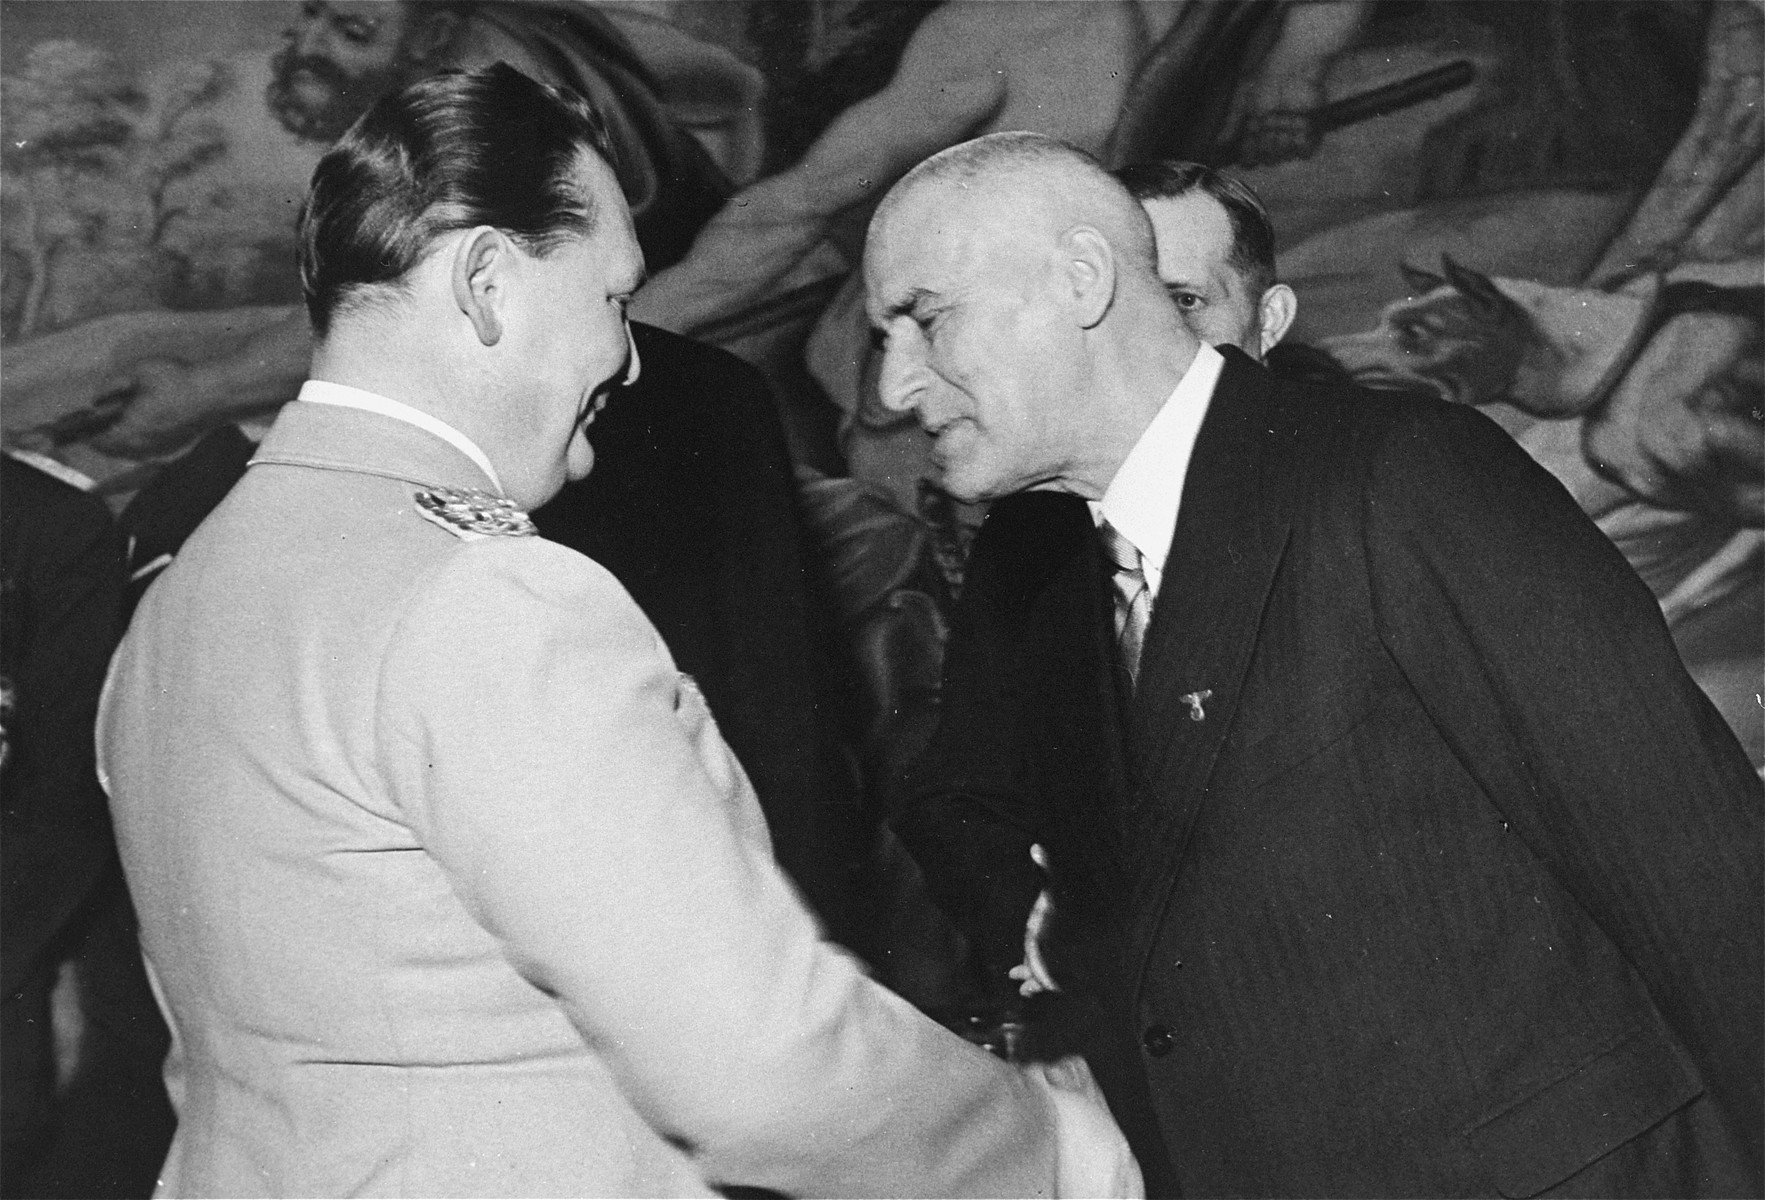 Reich Minister Hermann Goering greets Wilhelm Frick, the German Minister of the Interior, at an official public function.